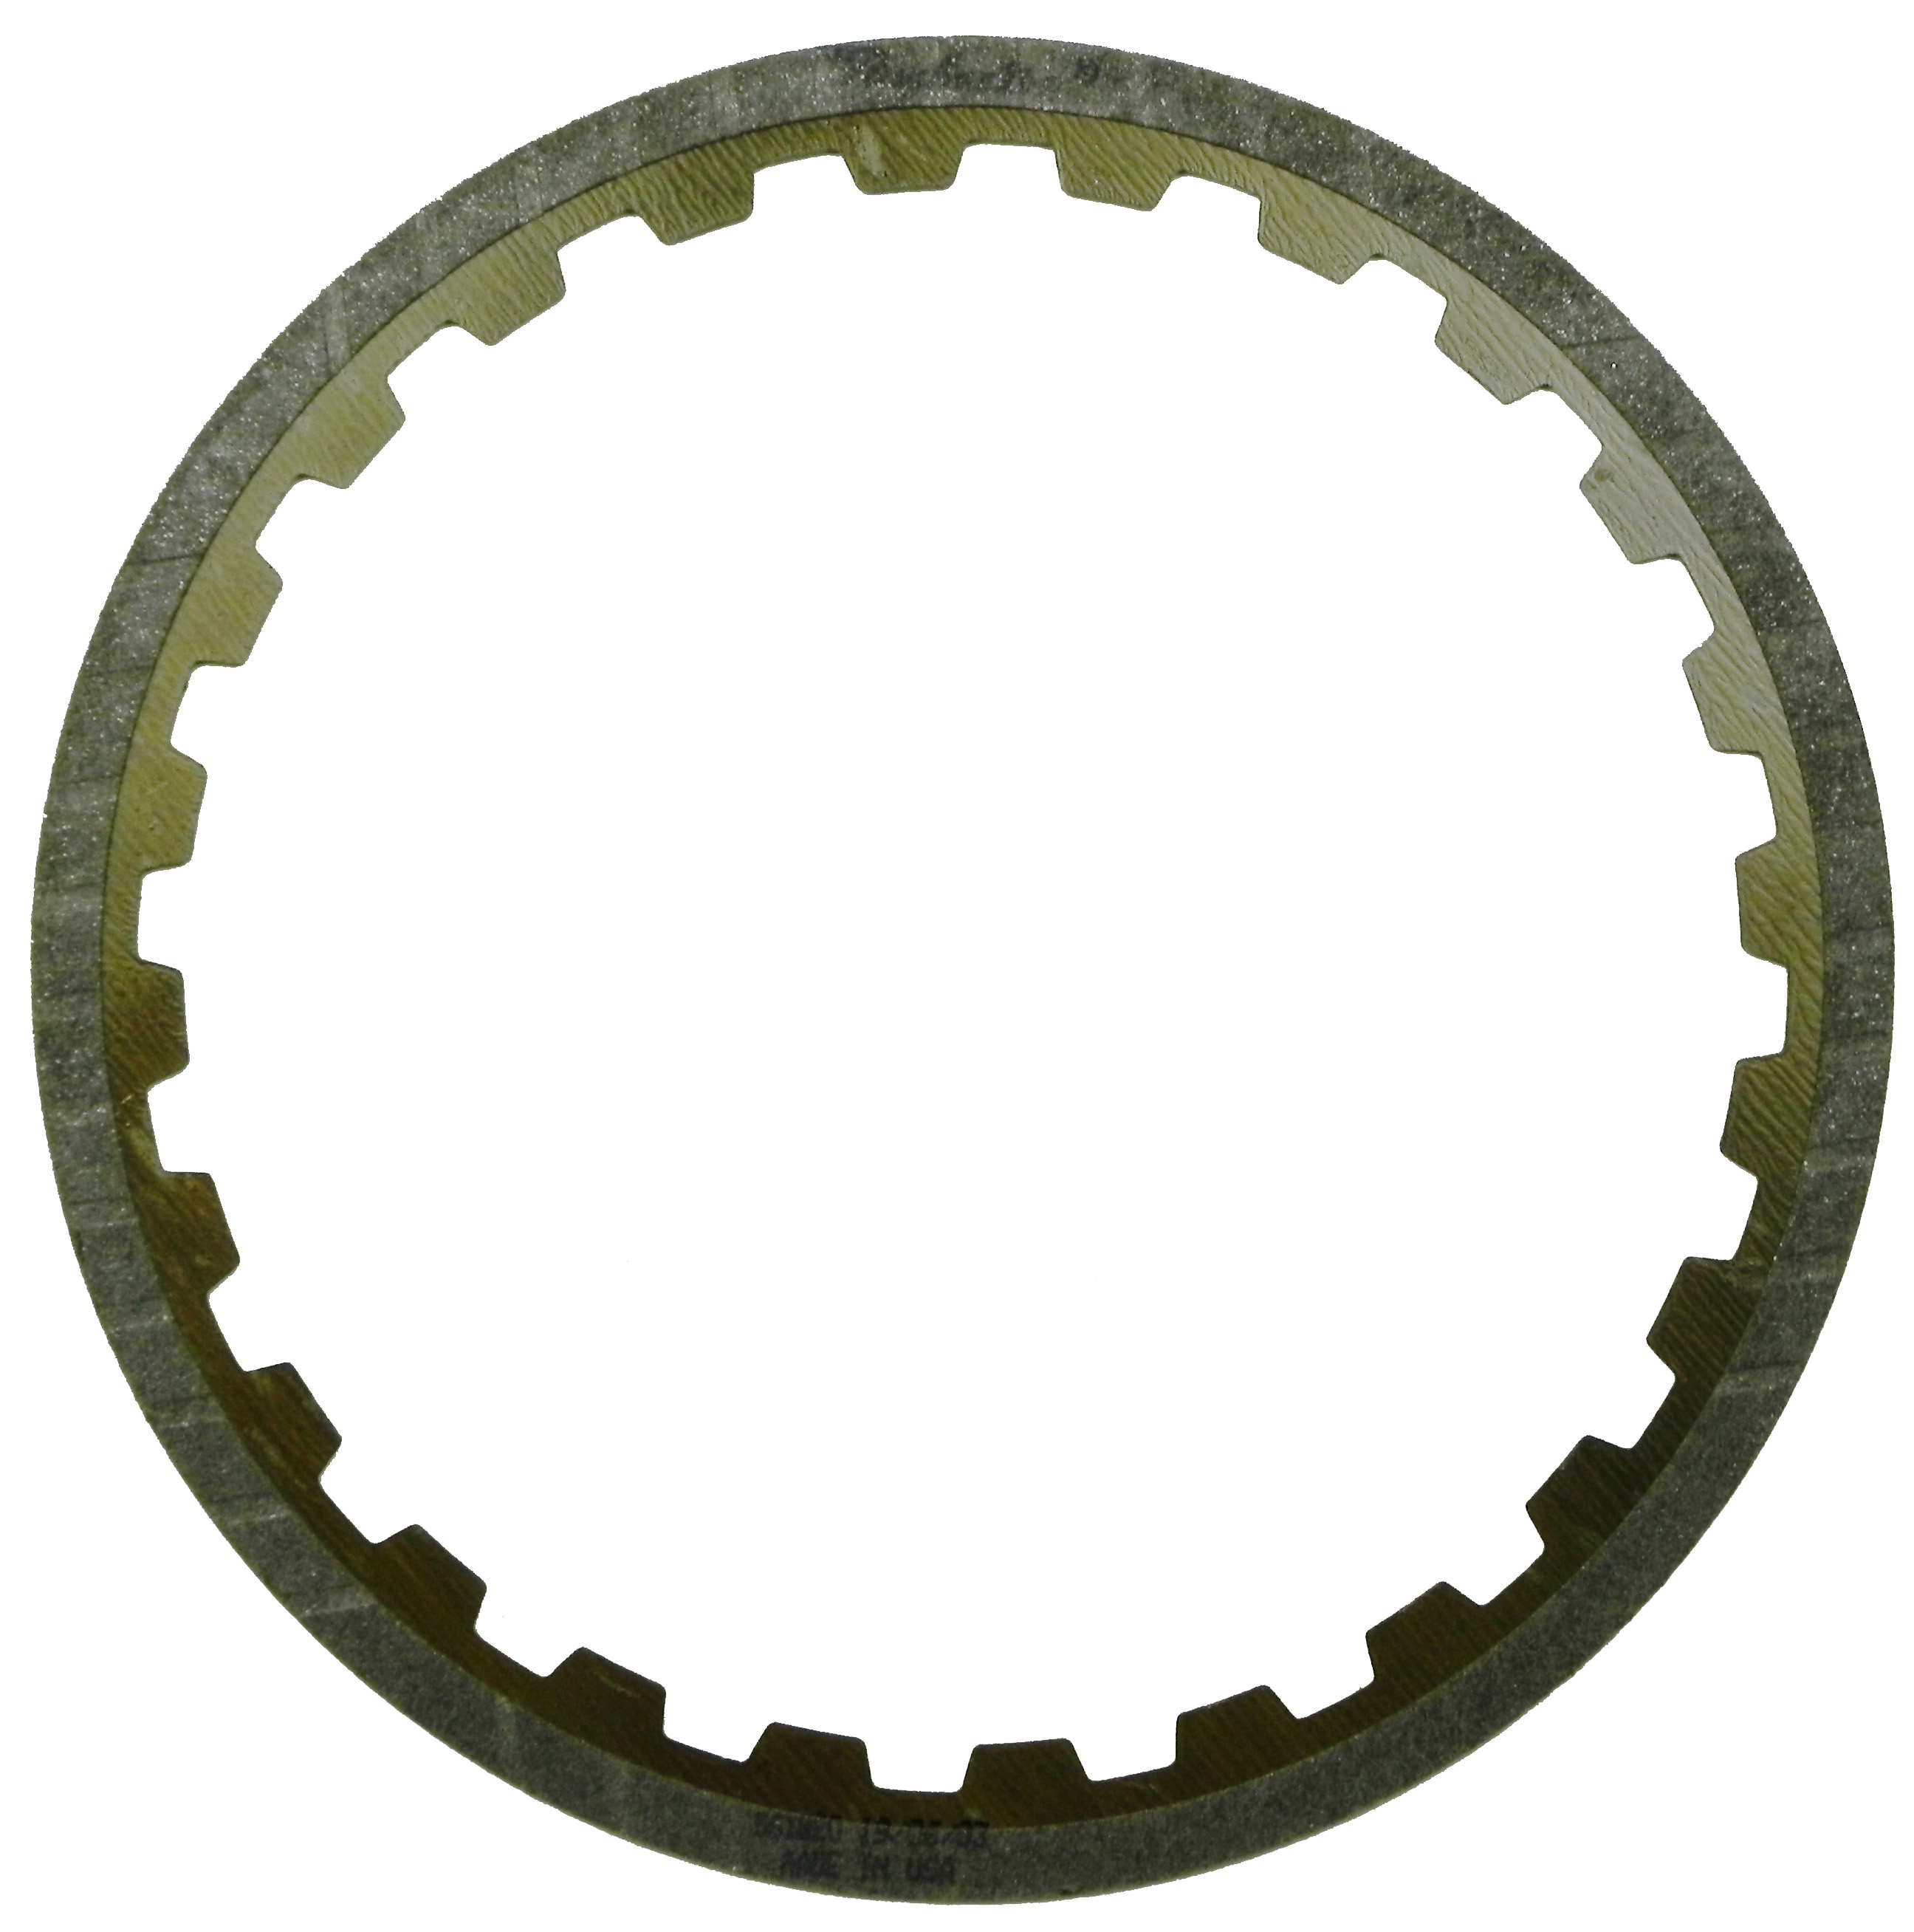 R561820 | 2002-2005 Friction Clutch Plate High Energy Reverse Brake High Energy